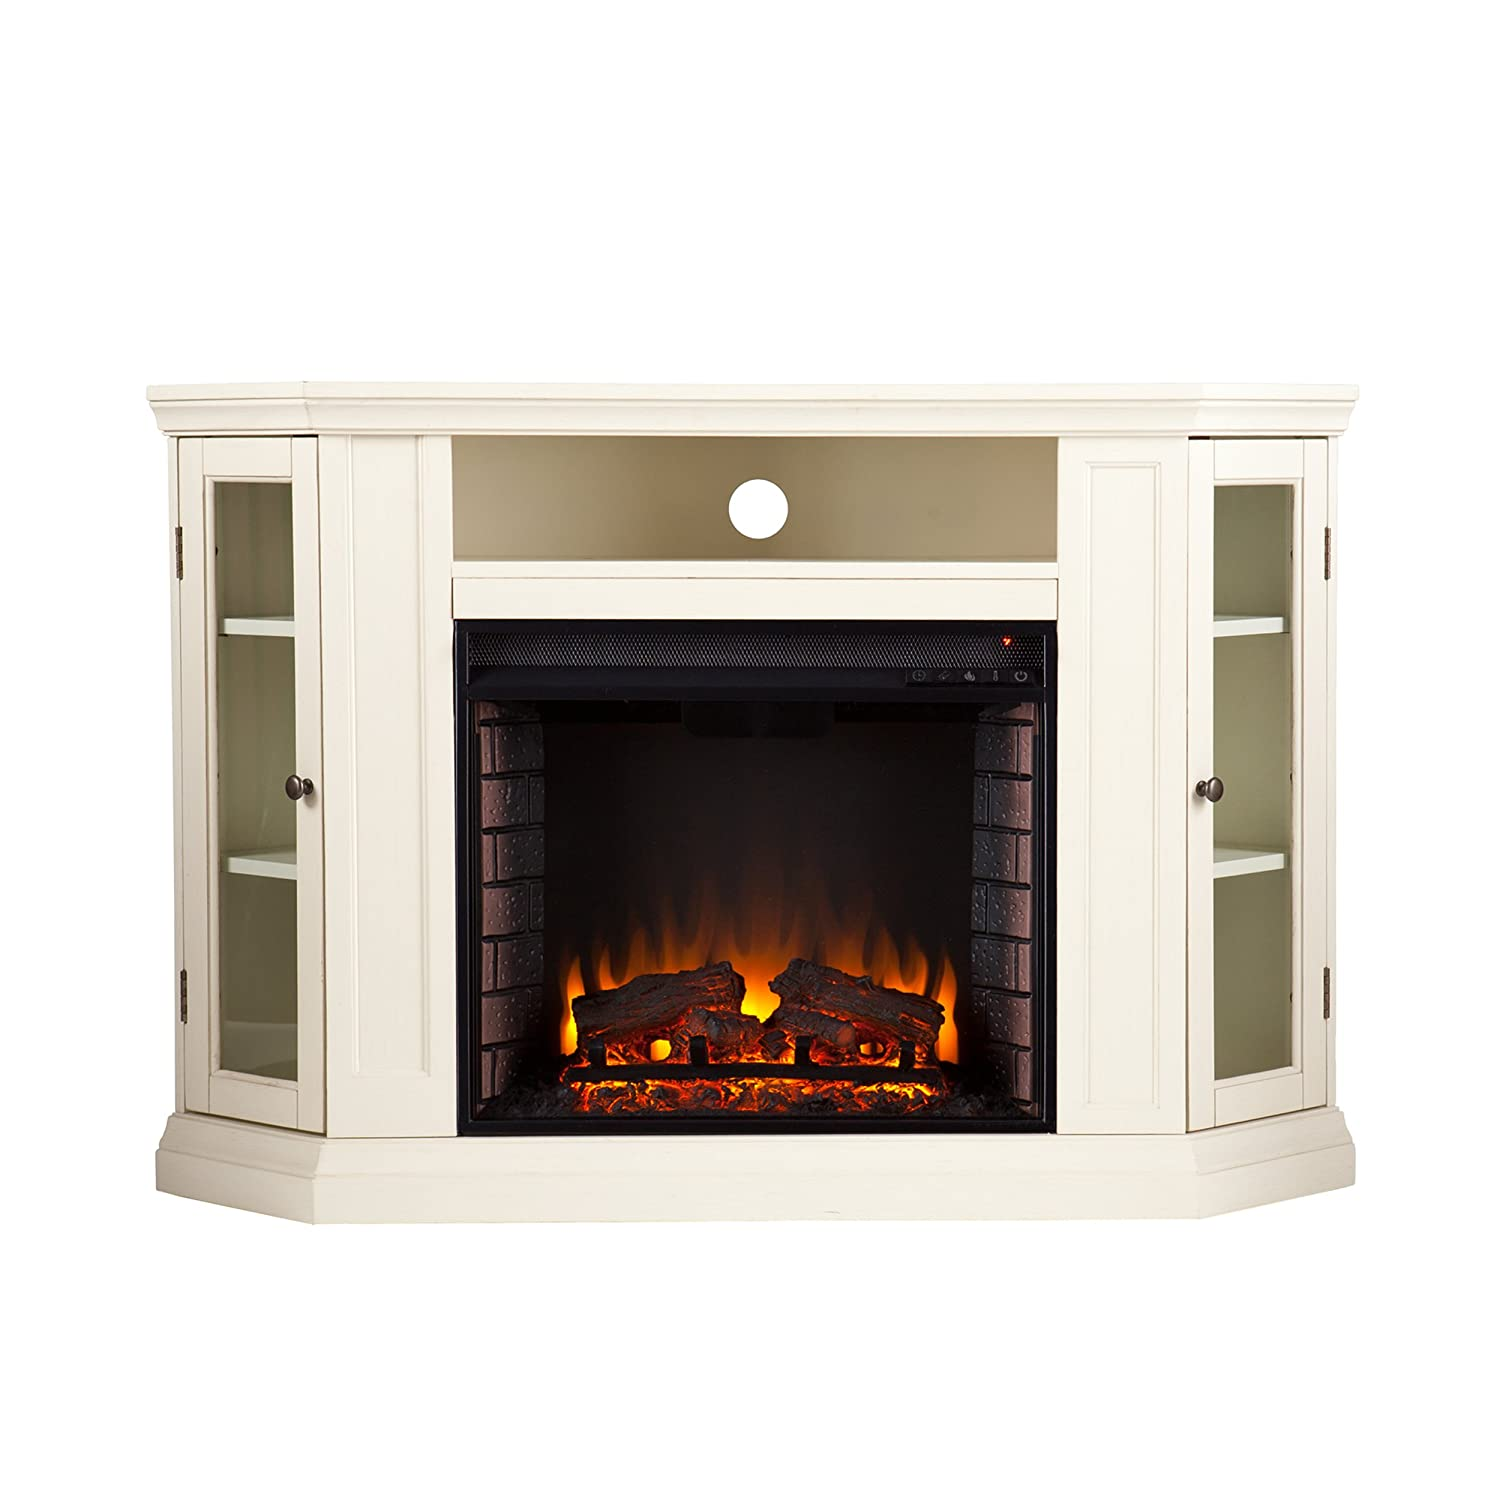 Look at our detailed Claremont Convertible Corner Electric Fireplace TV Stand Review. It comes in 4 finishes w/ optional corner placement. This is a winner.